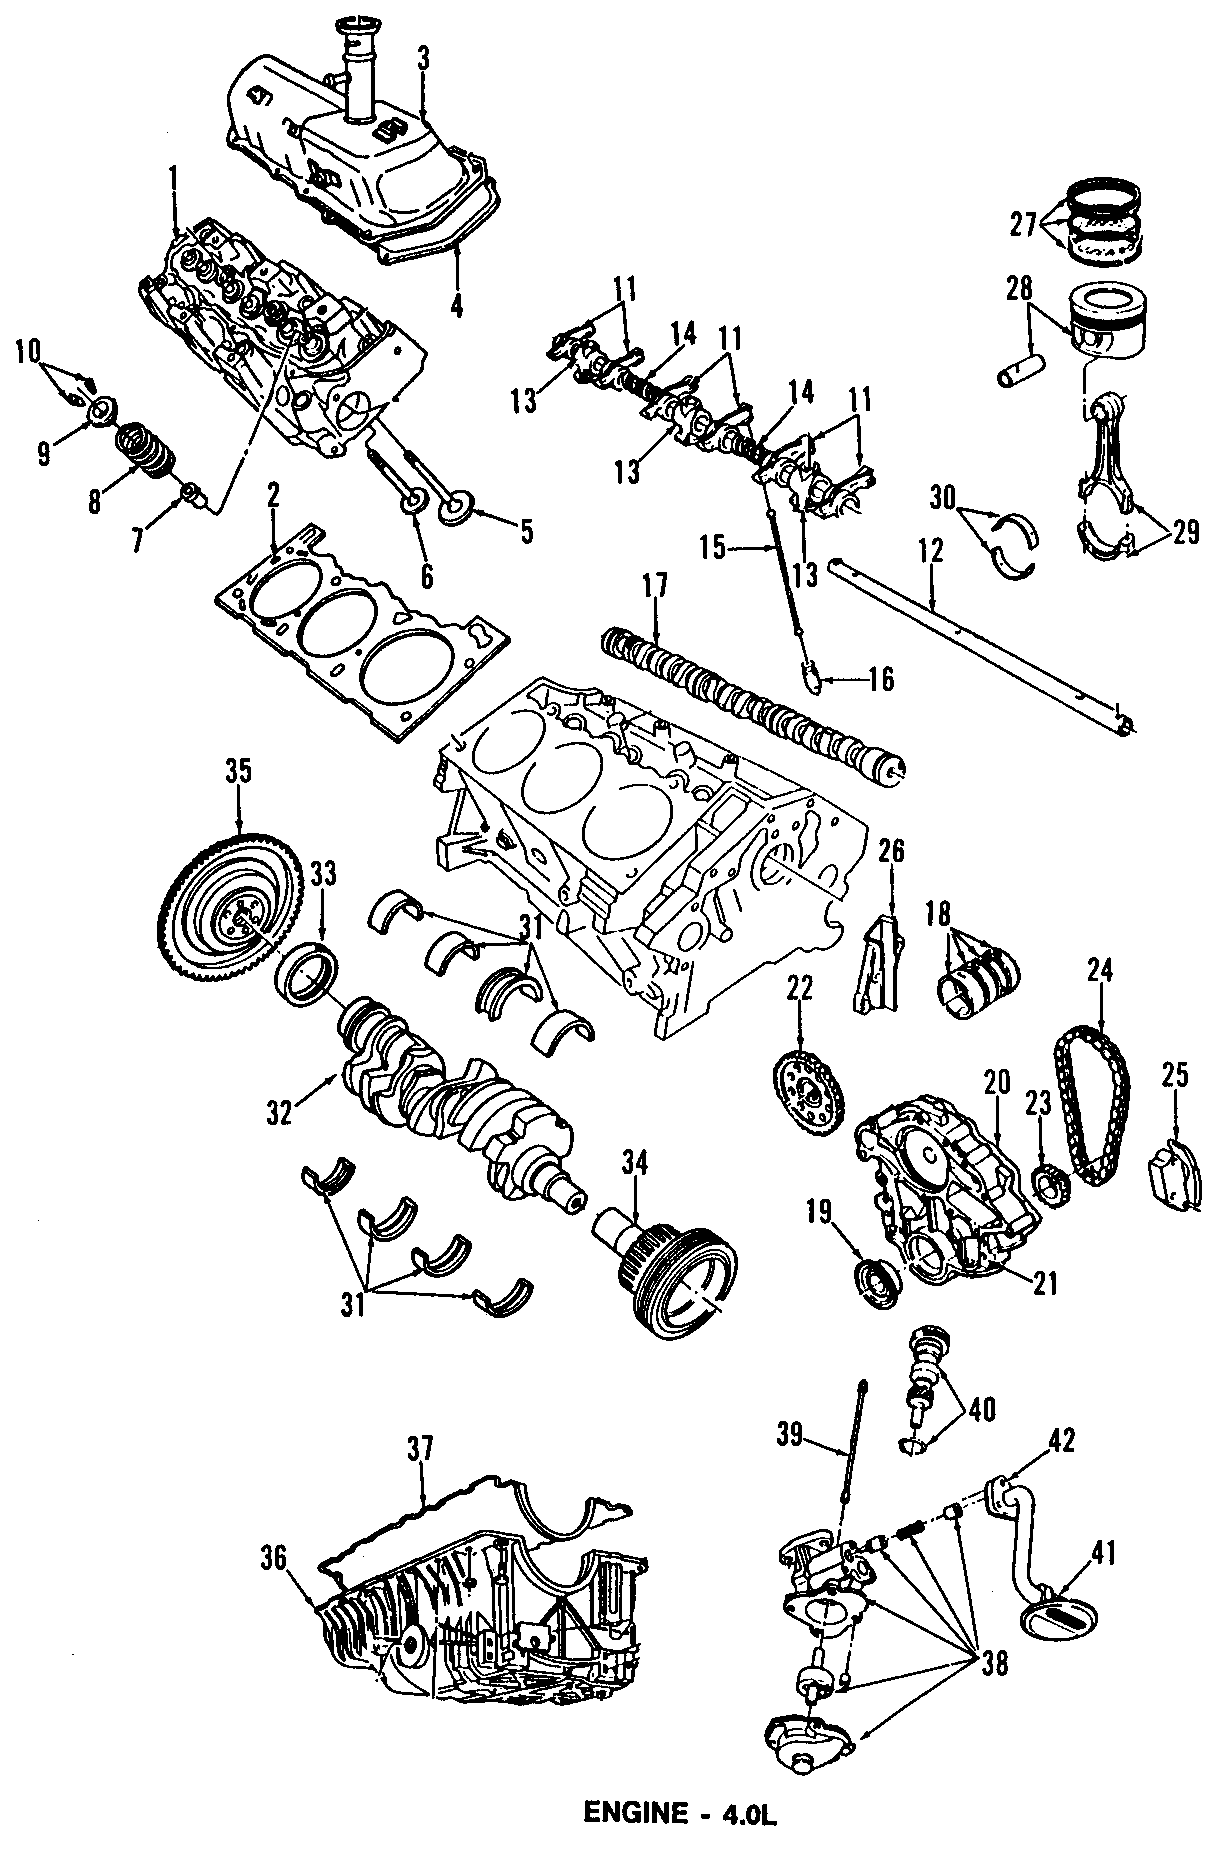 Ford Ranger Engine Timing Chain Guide. Along, BEARINGS